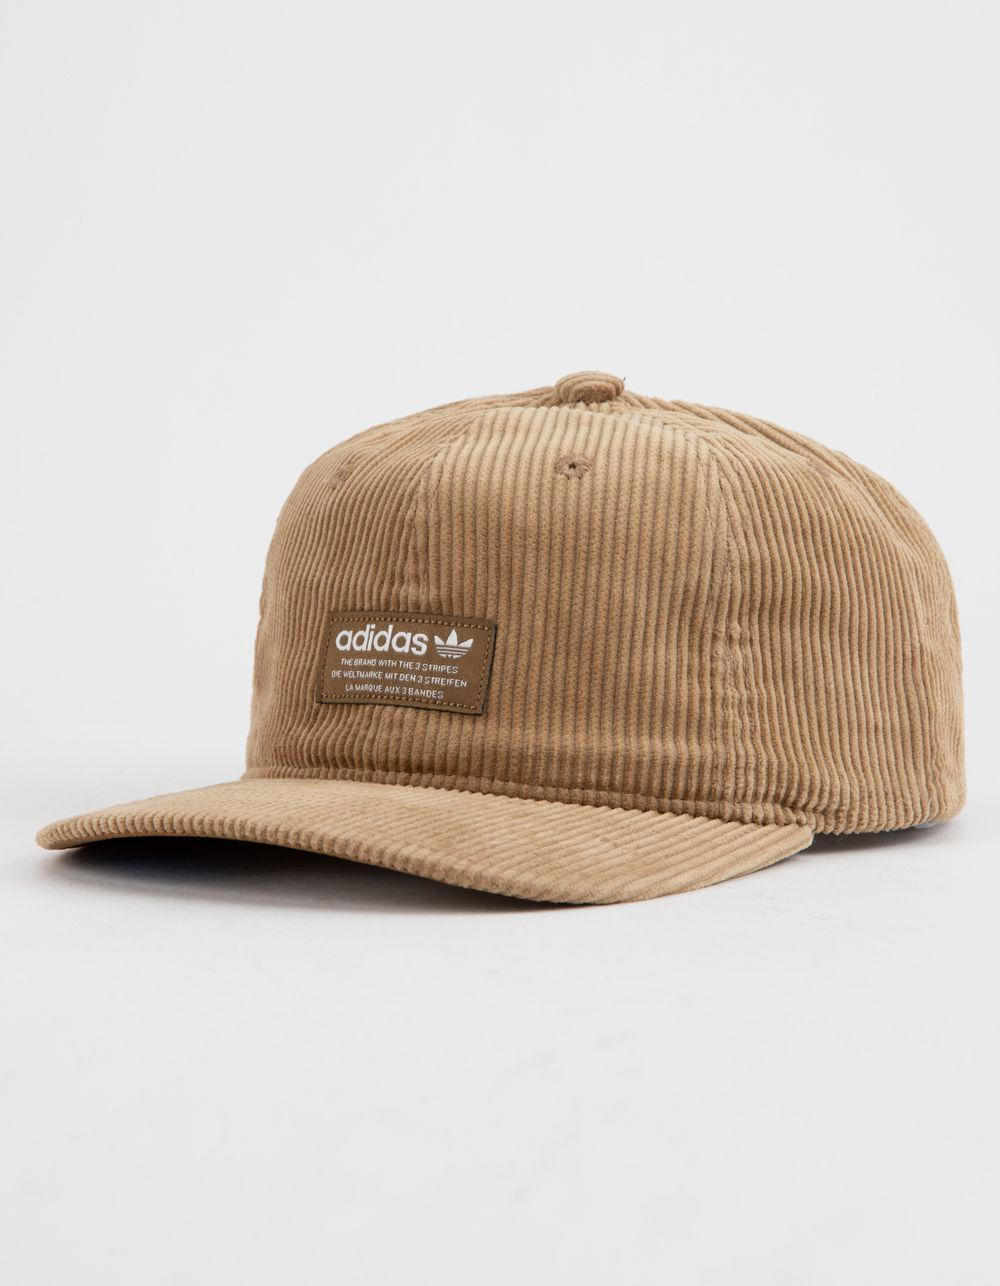 3bd8c9fcaa7 Adidas - Brown Originals Relaxed Wide Wale Corduroy Mens Strapback Hat for  Men - Lyst. View fullscreen